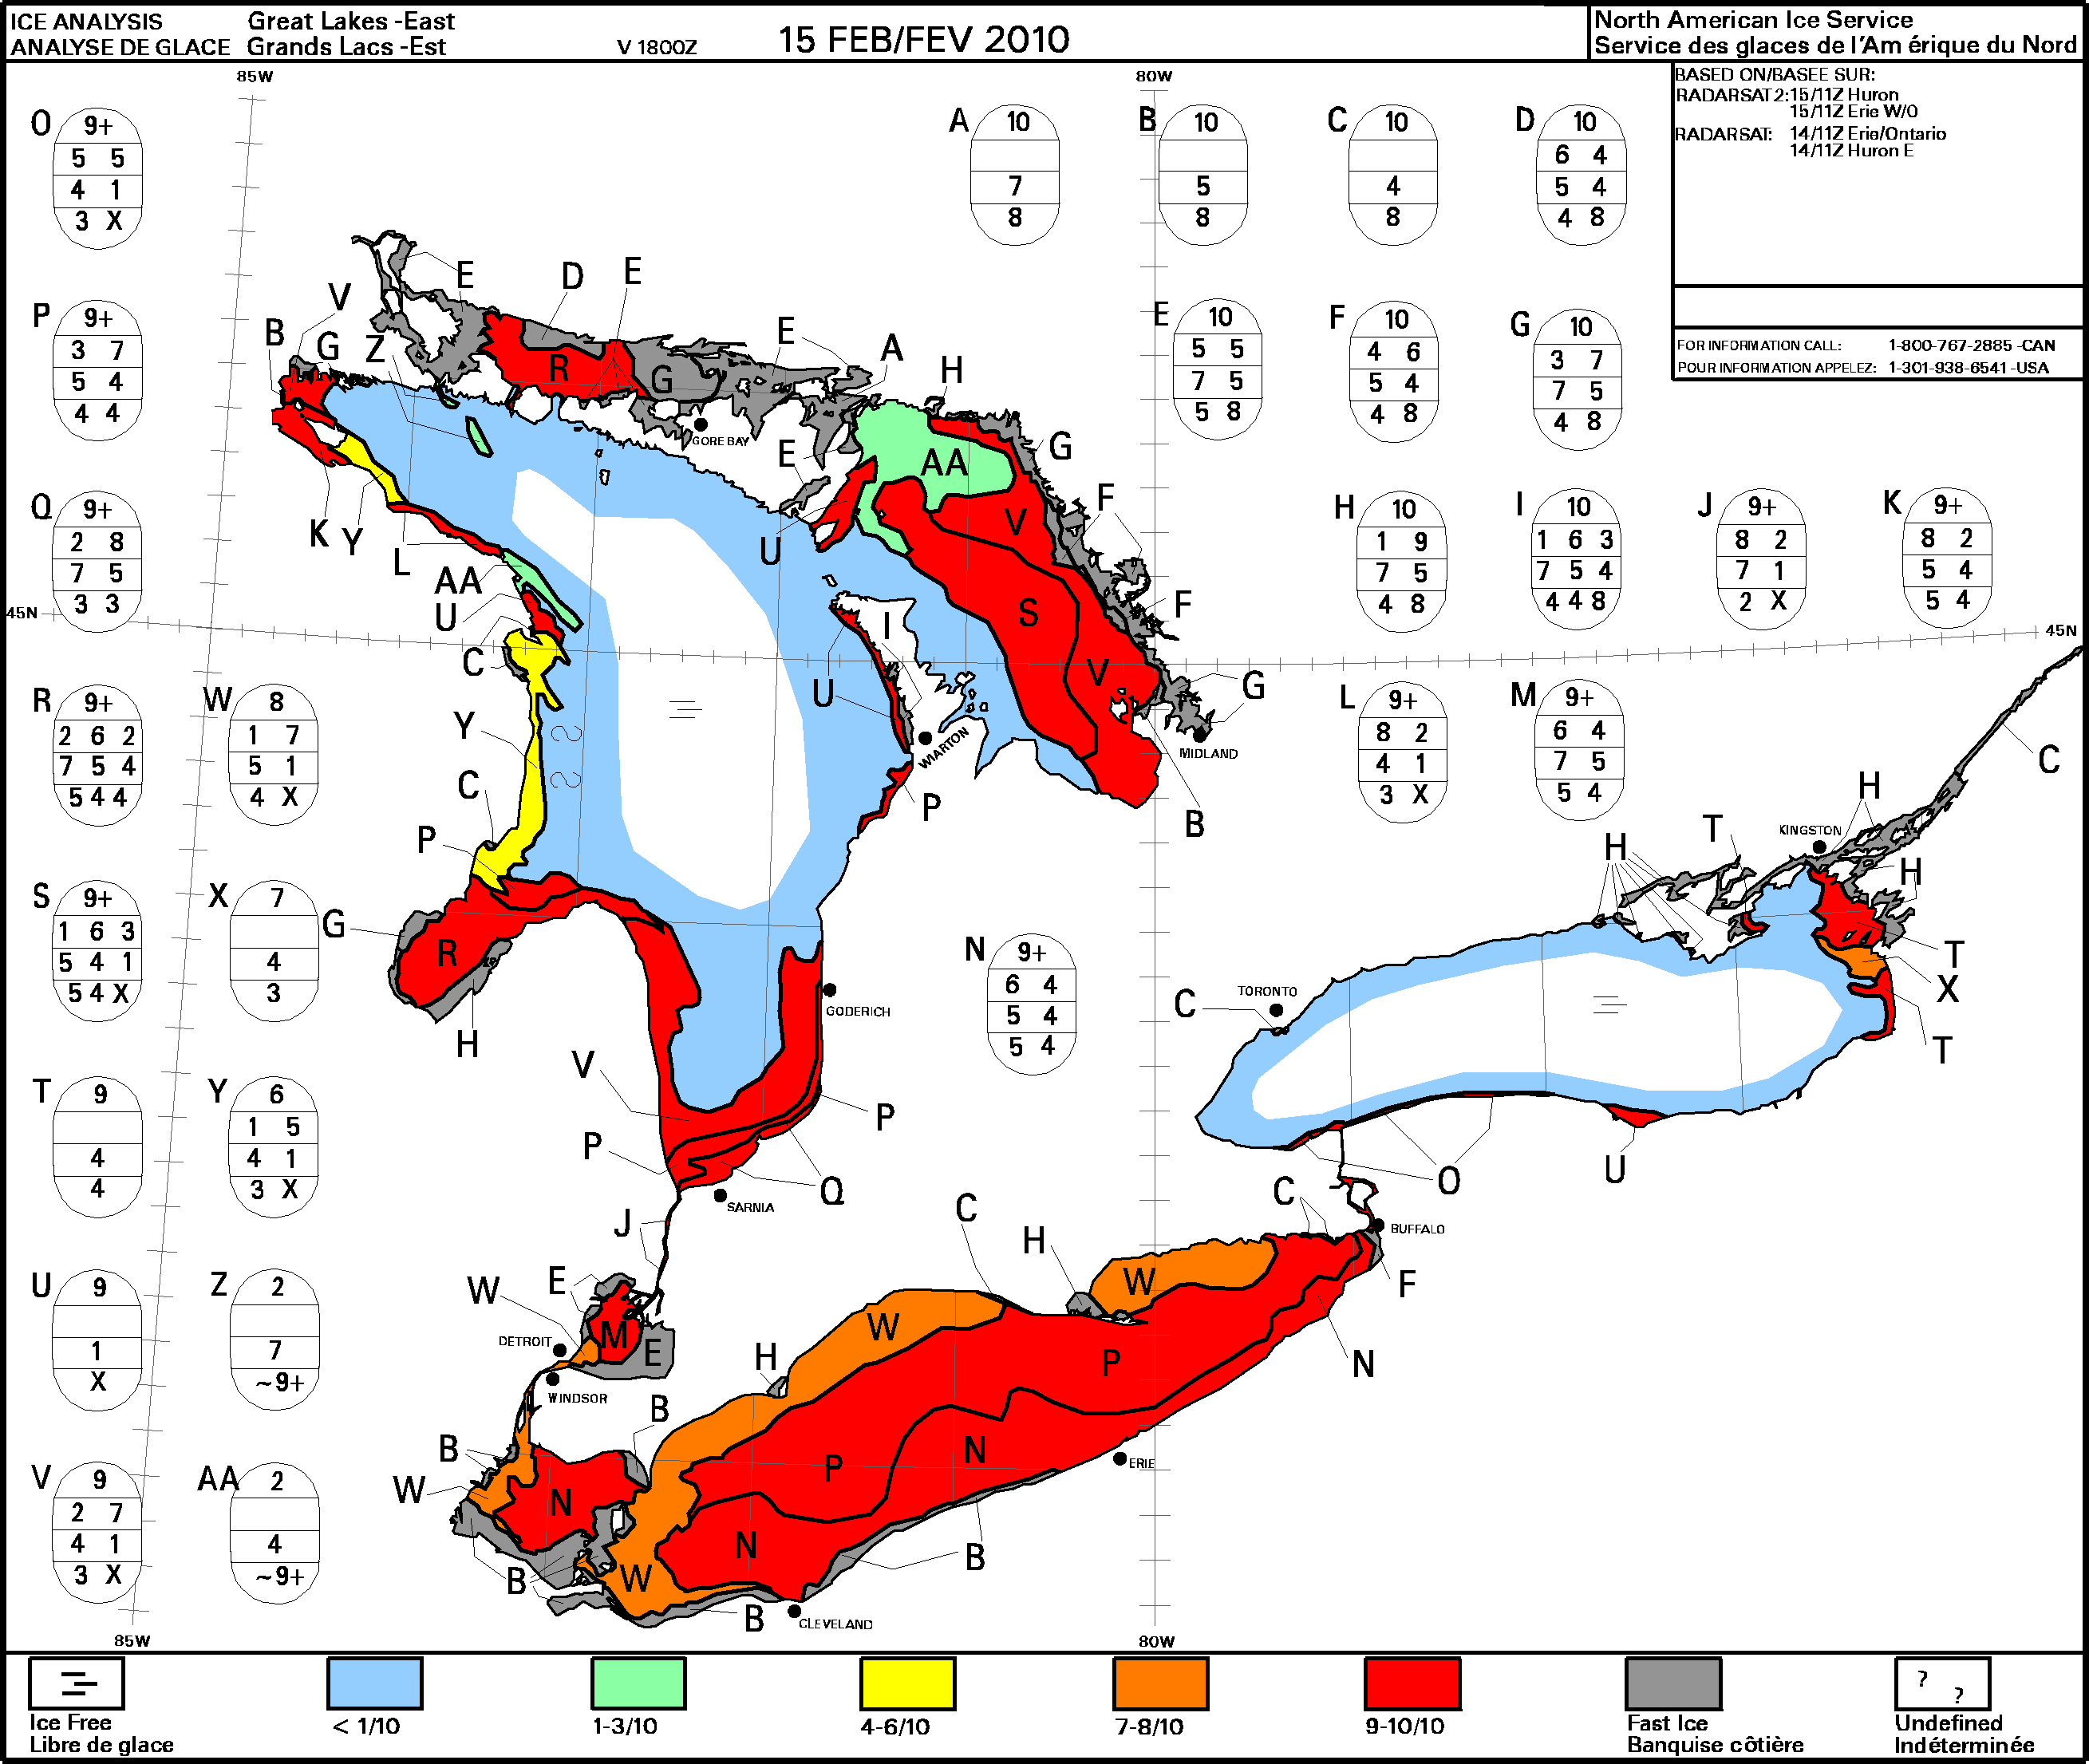 i-1280fedf1b033148003924a73c164258-greatlakes_east_ice.png